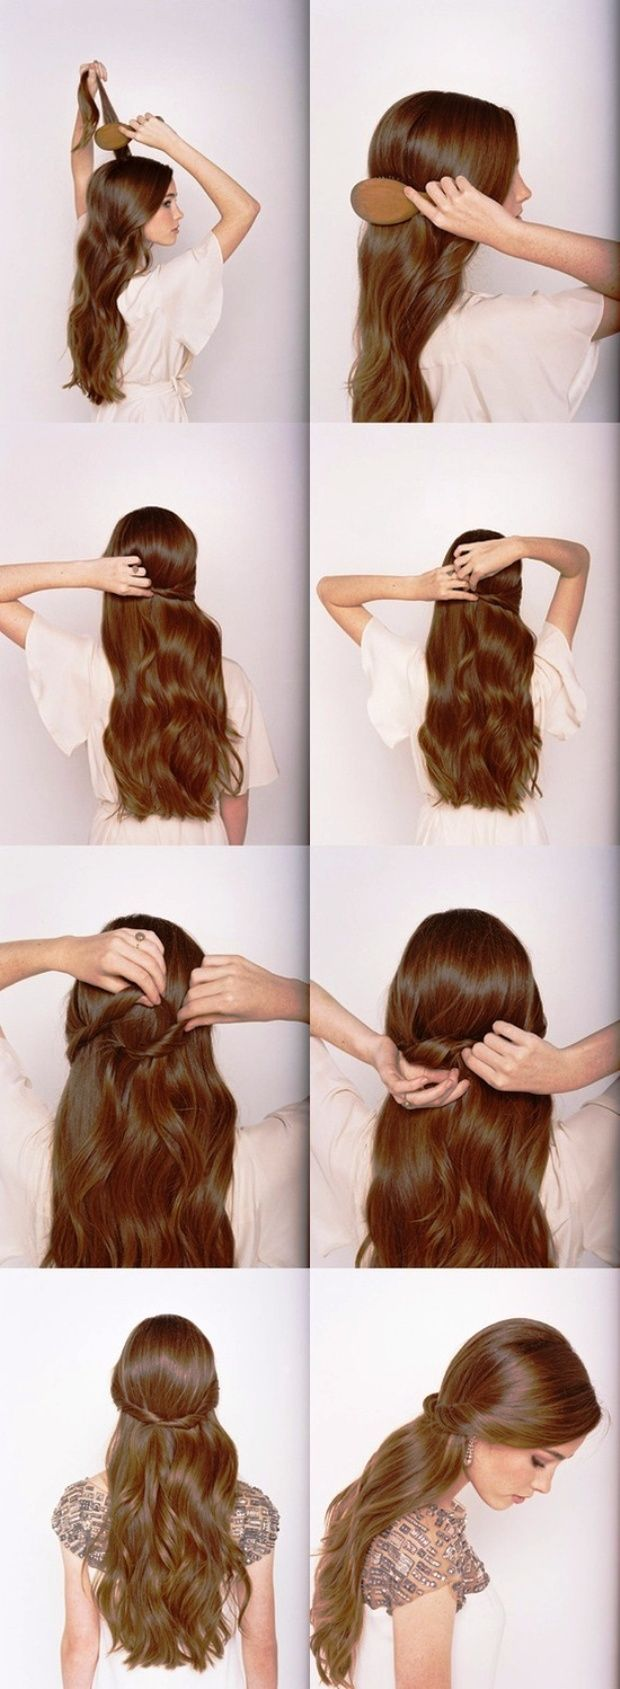 7 super easy homecoming hair ideas | diy hair, homecoming and prom